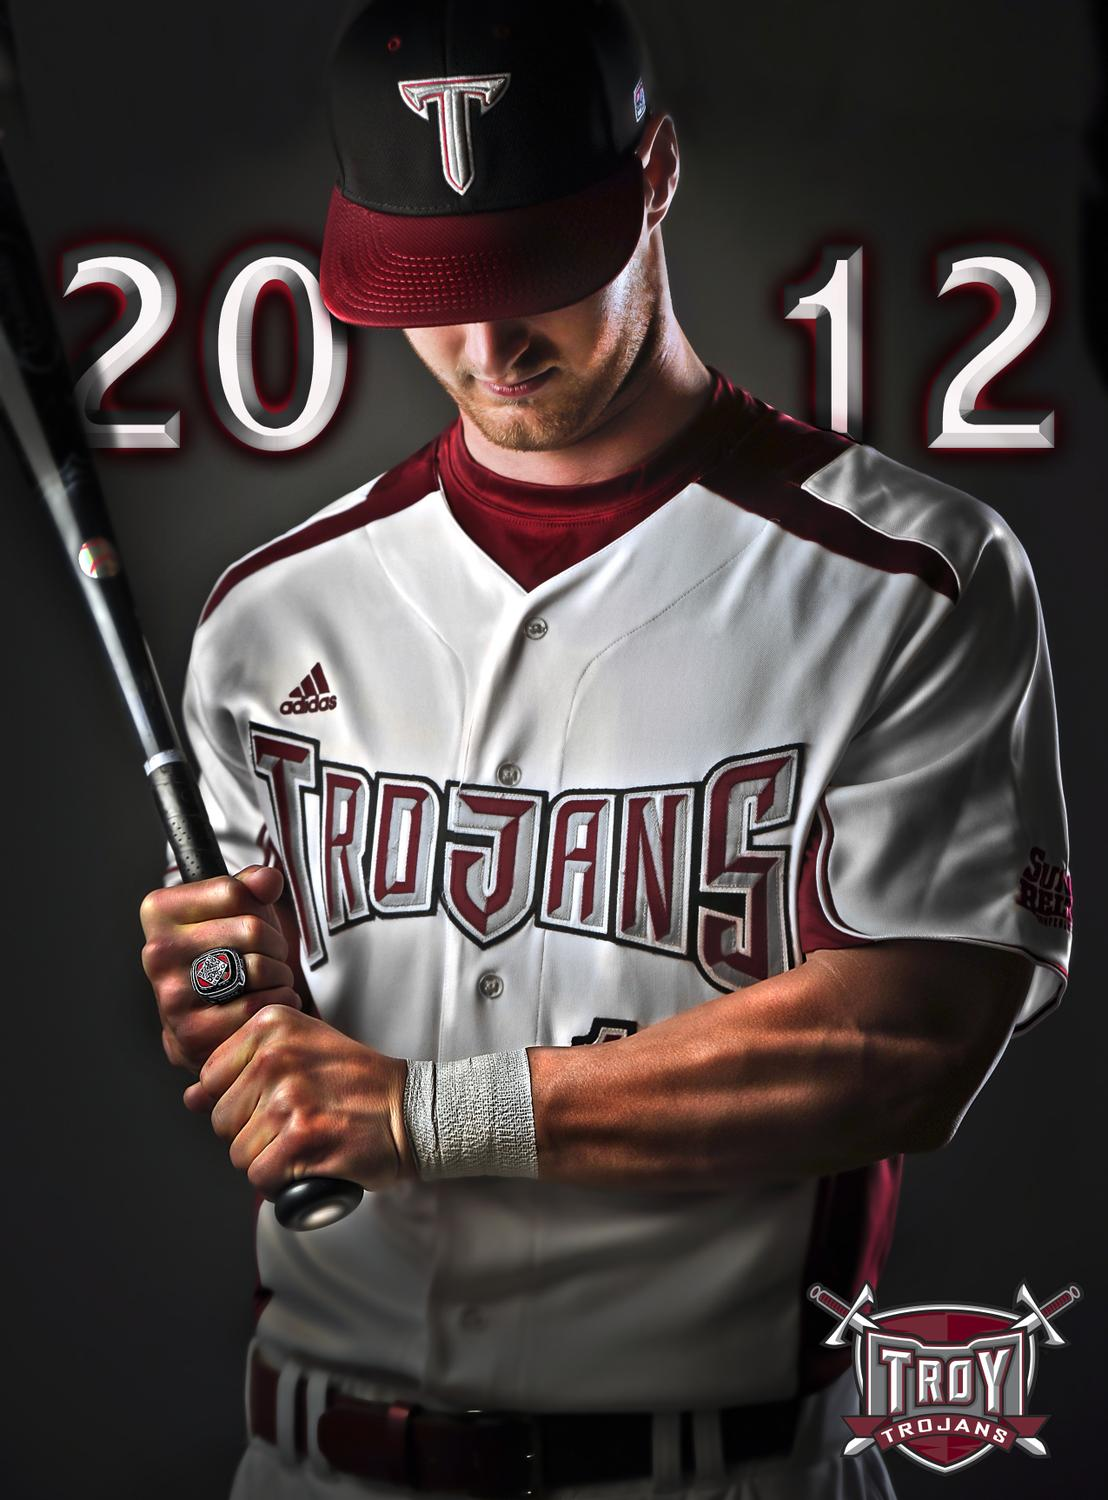 2dd219f59 2012 Baseball Media Guide by Troy University Athletics - issuu